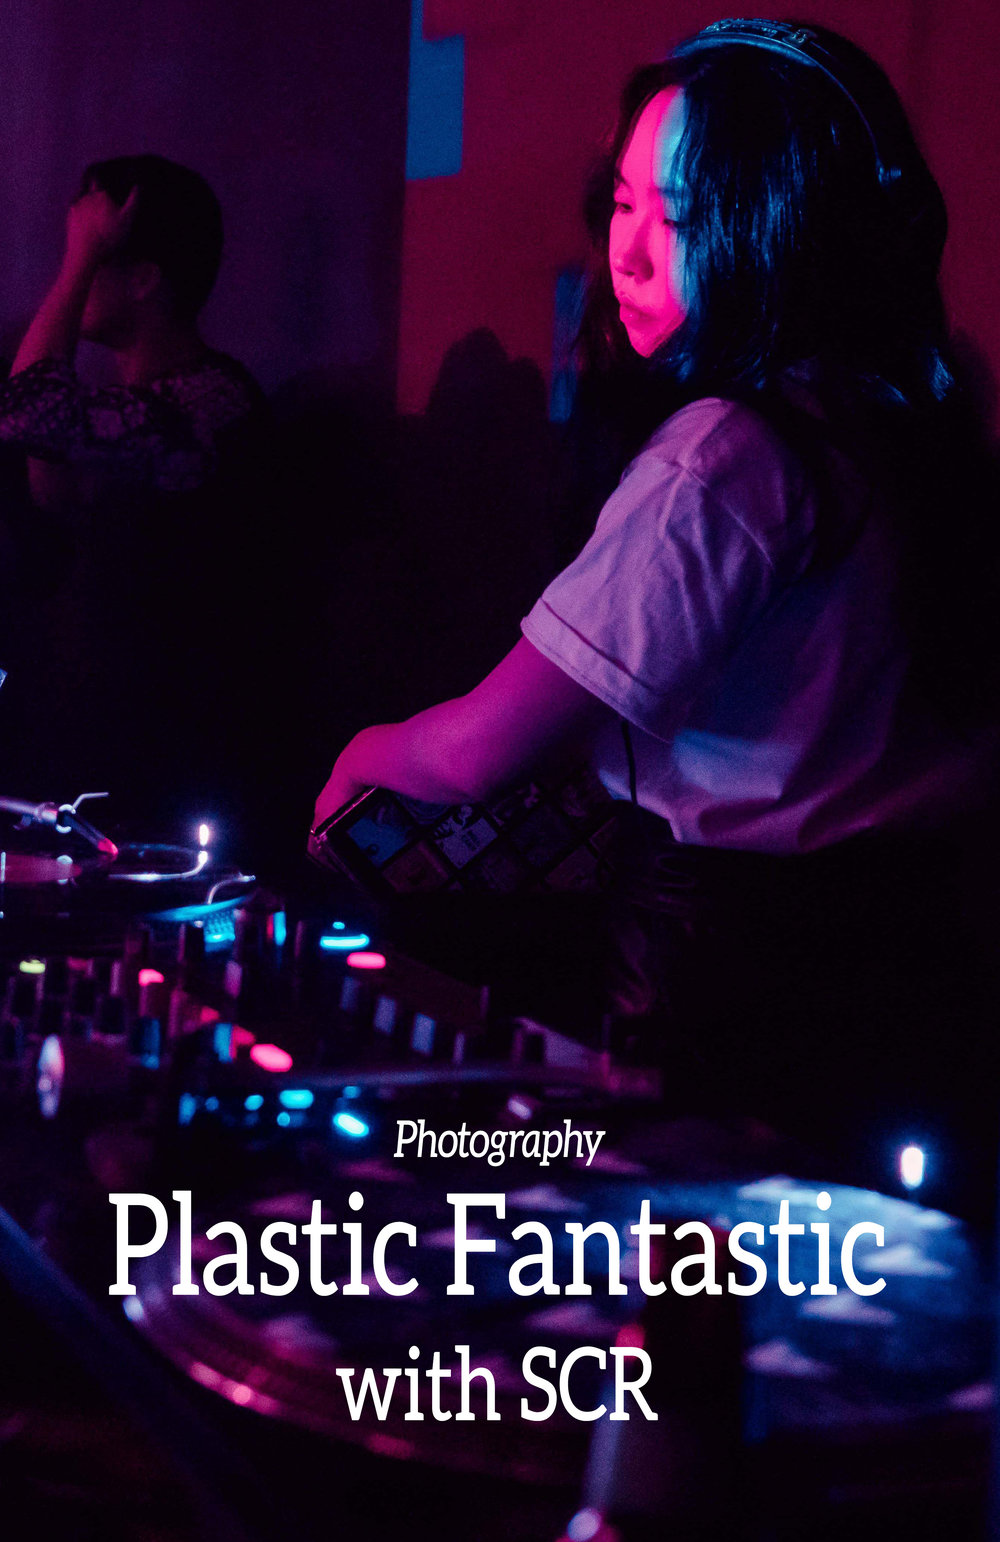 Plastic Fantastic with SCR - Shots from the Seoul Daelim Museum closing event of their Plastic Fantastic Exhibition.